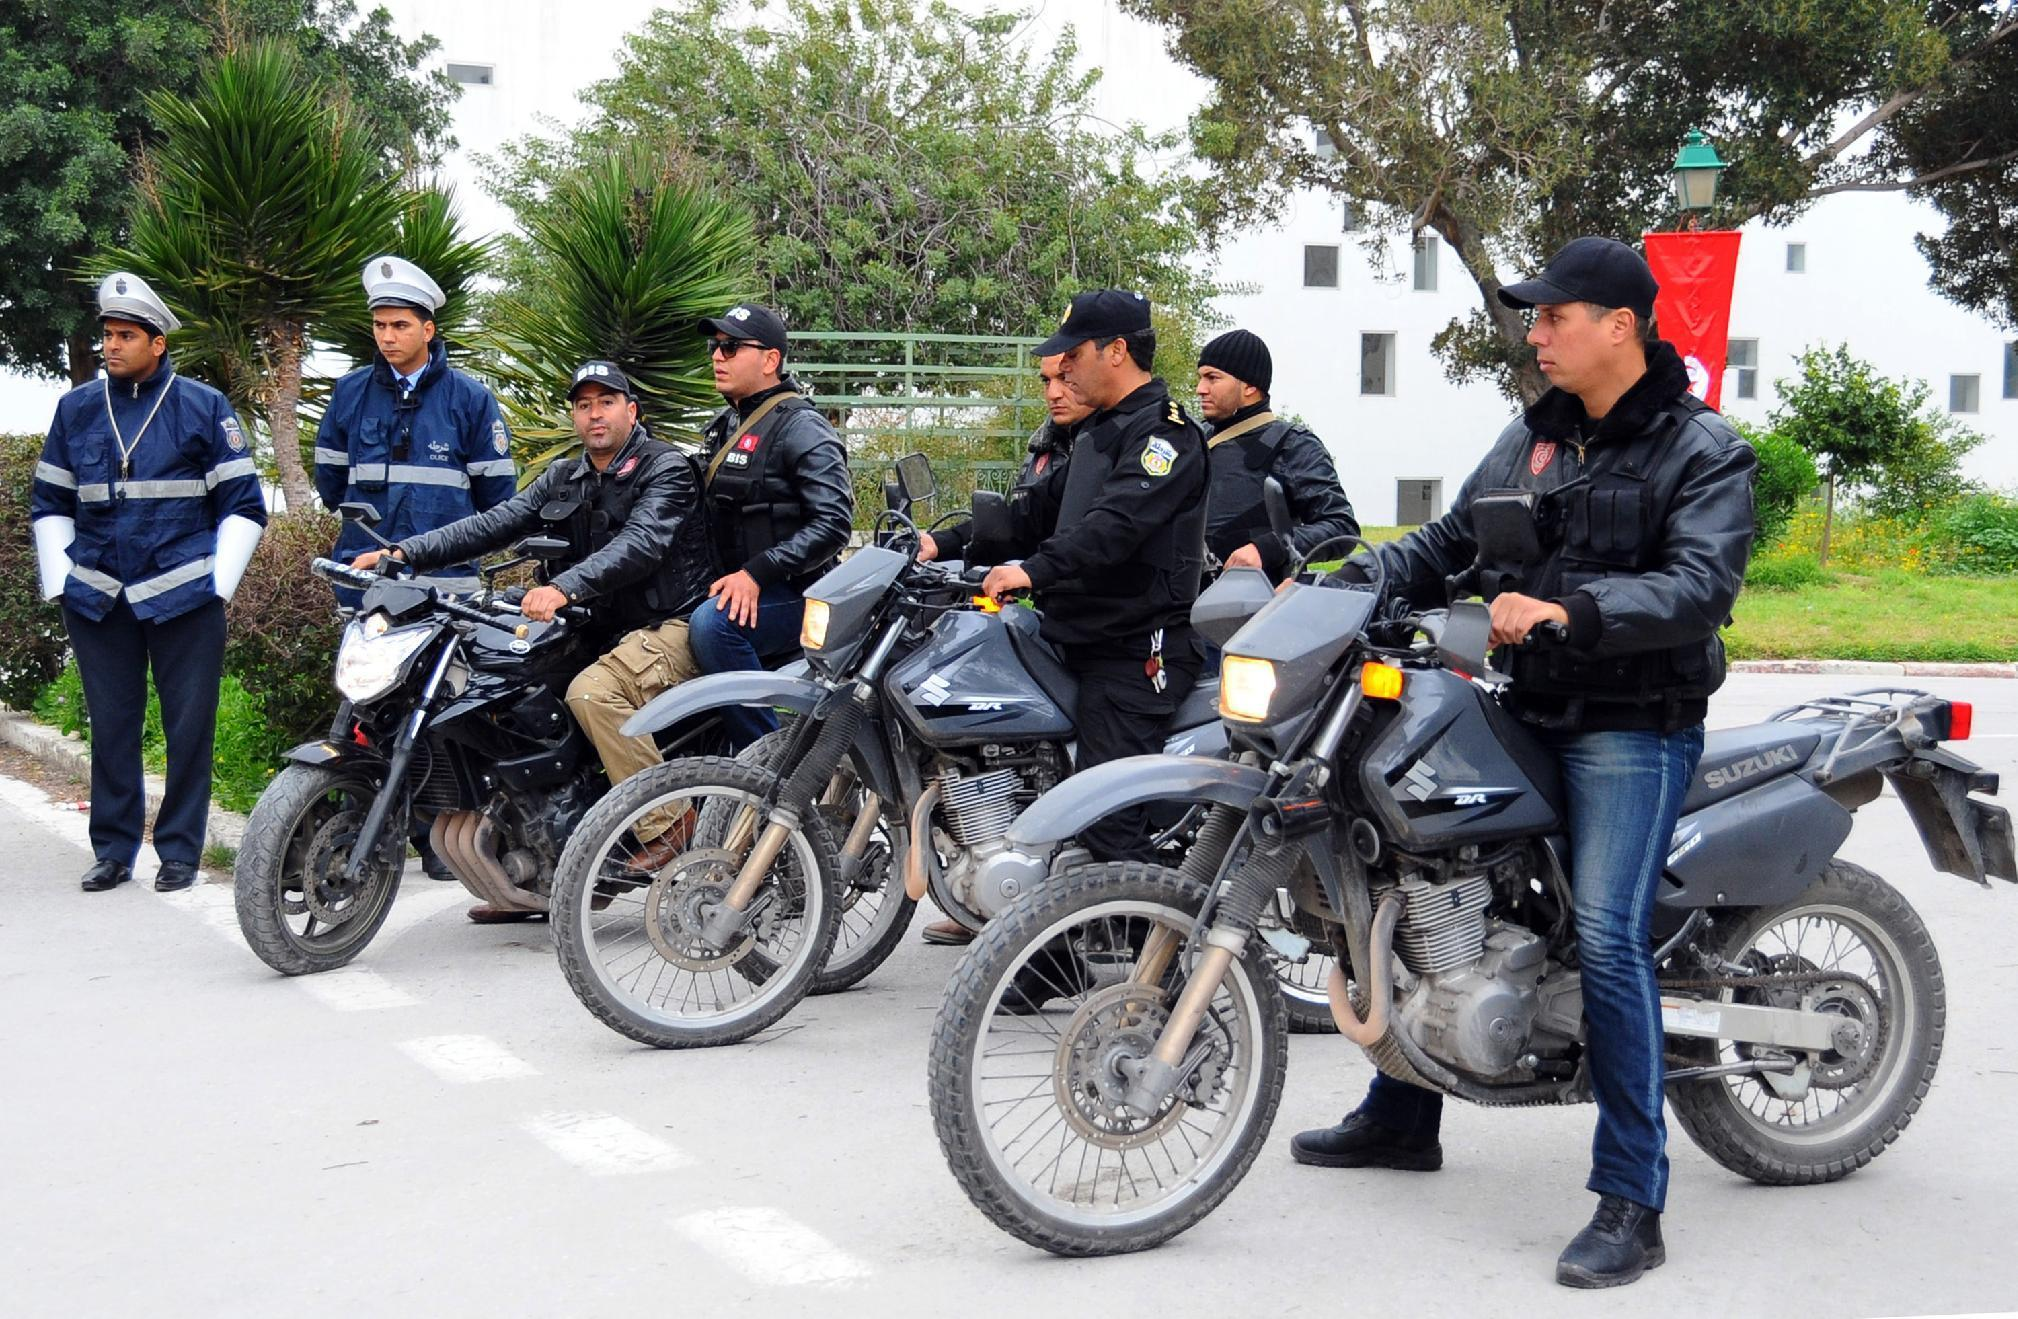 Tunisia: 23 arrested in connection with deadly museum attack